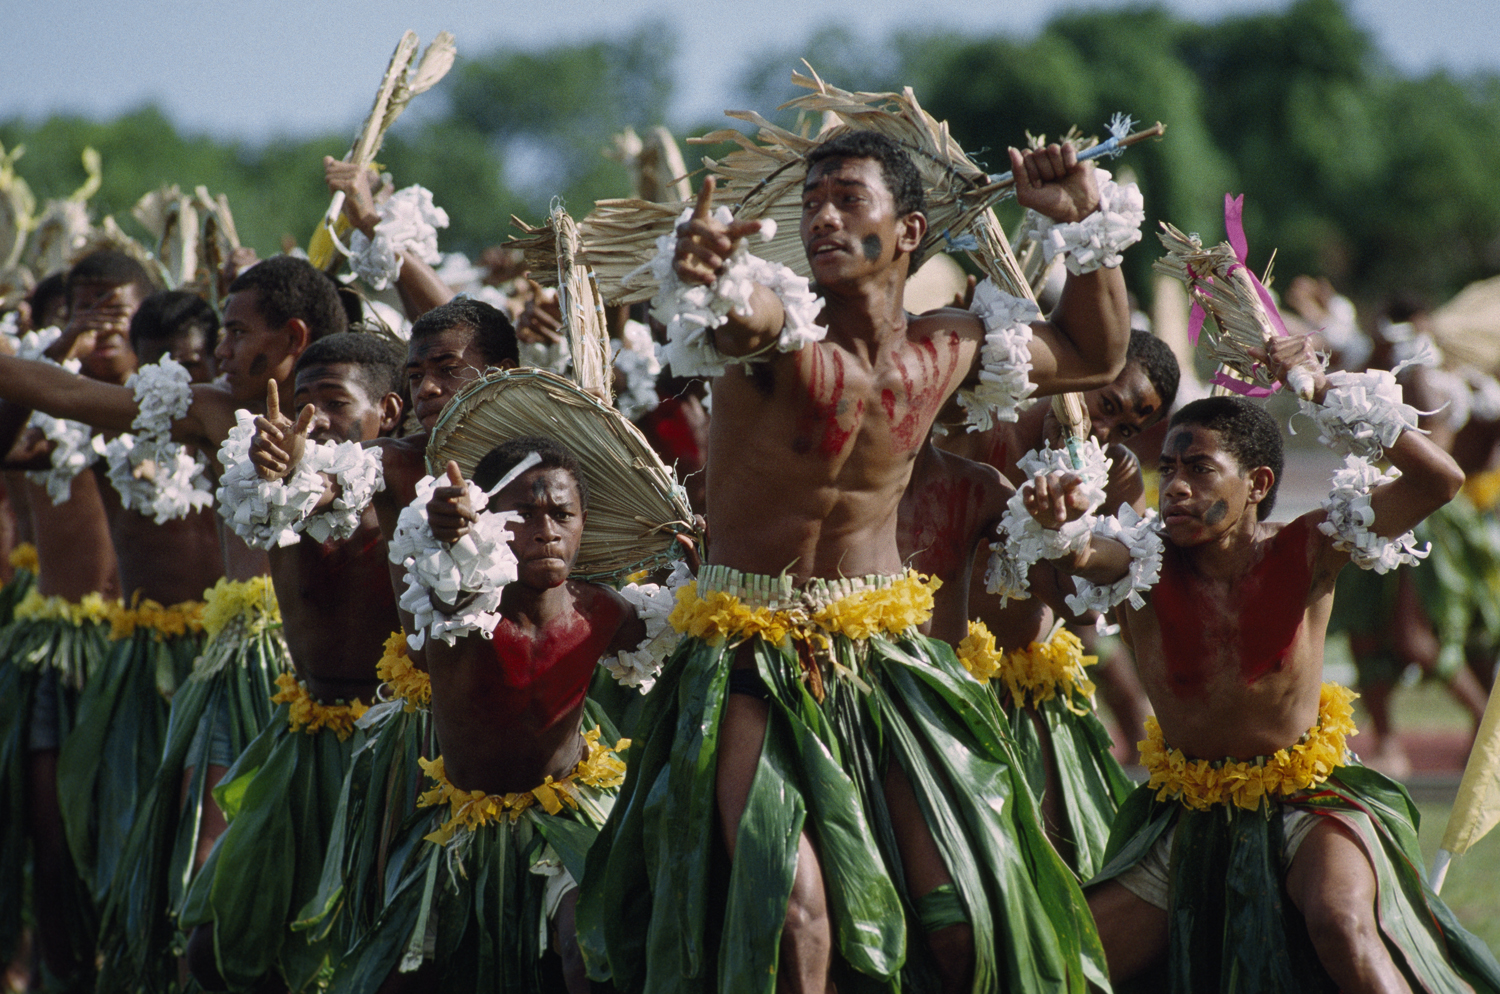 Photo © James L. Stanfield, National Geographic | Fijian Dancers